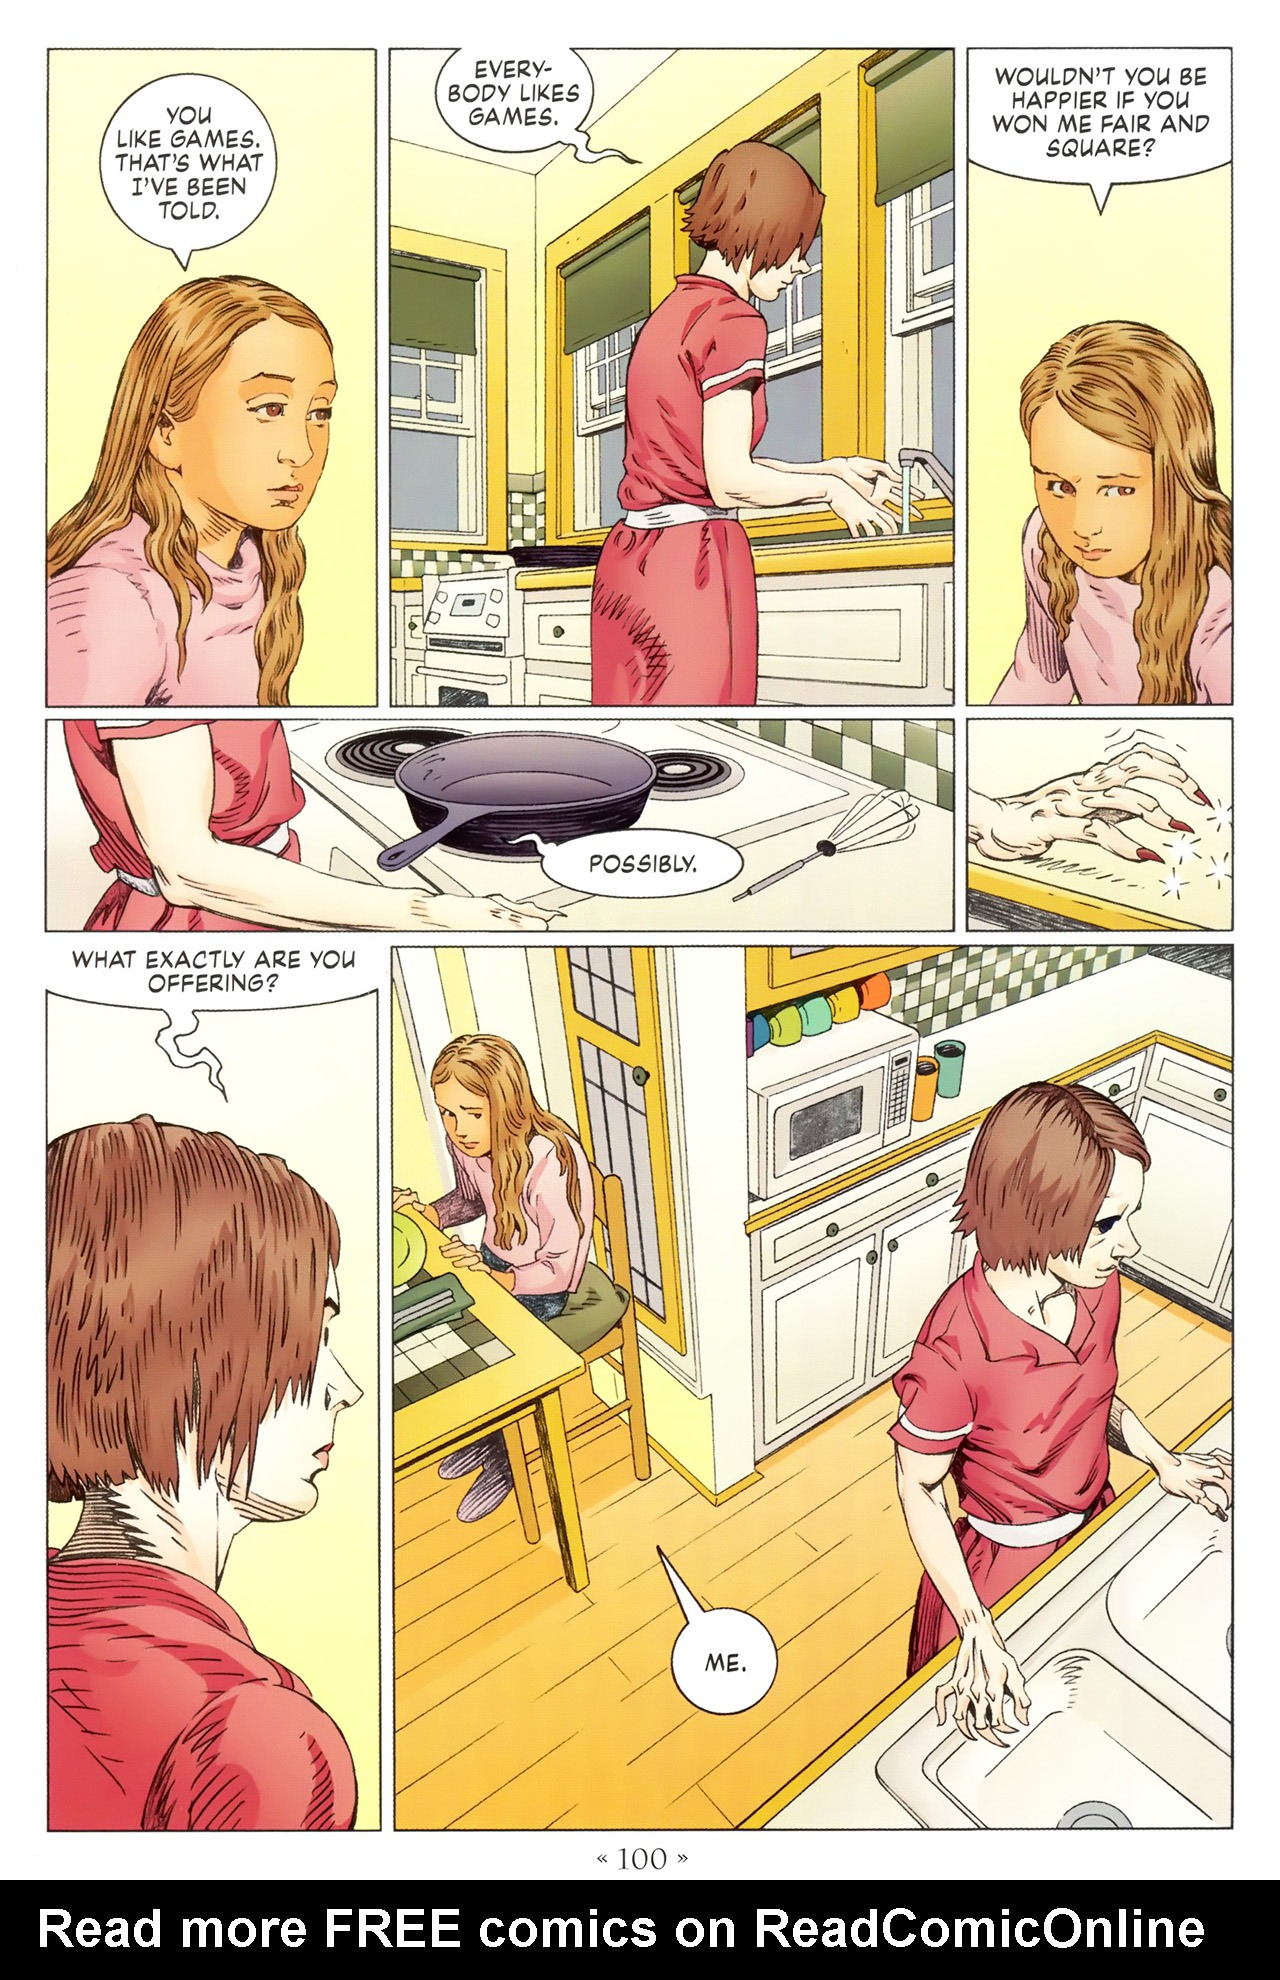 Read online Coraline comic -  Issue #1 - 106